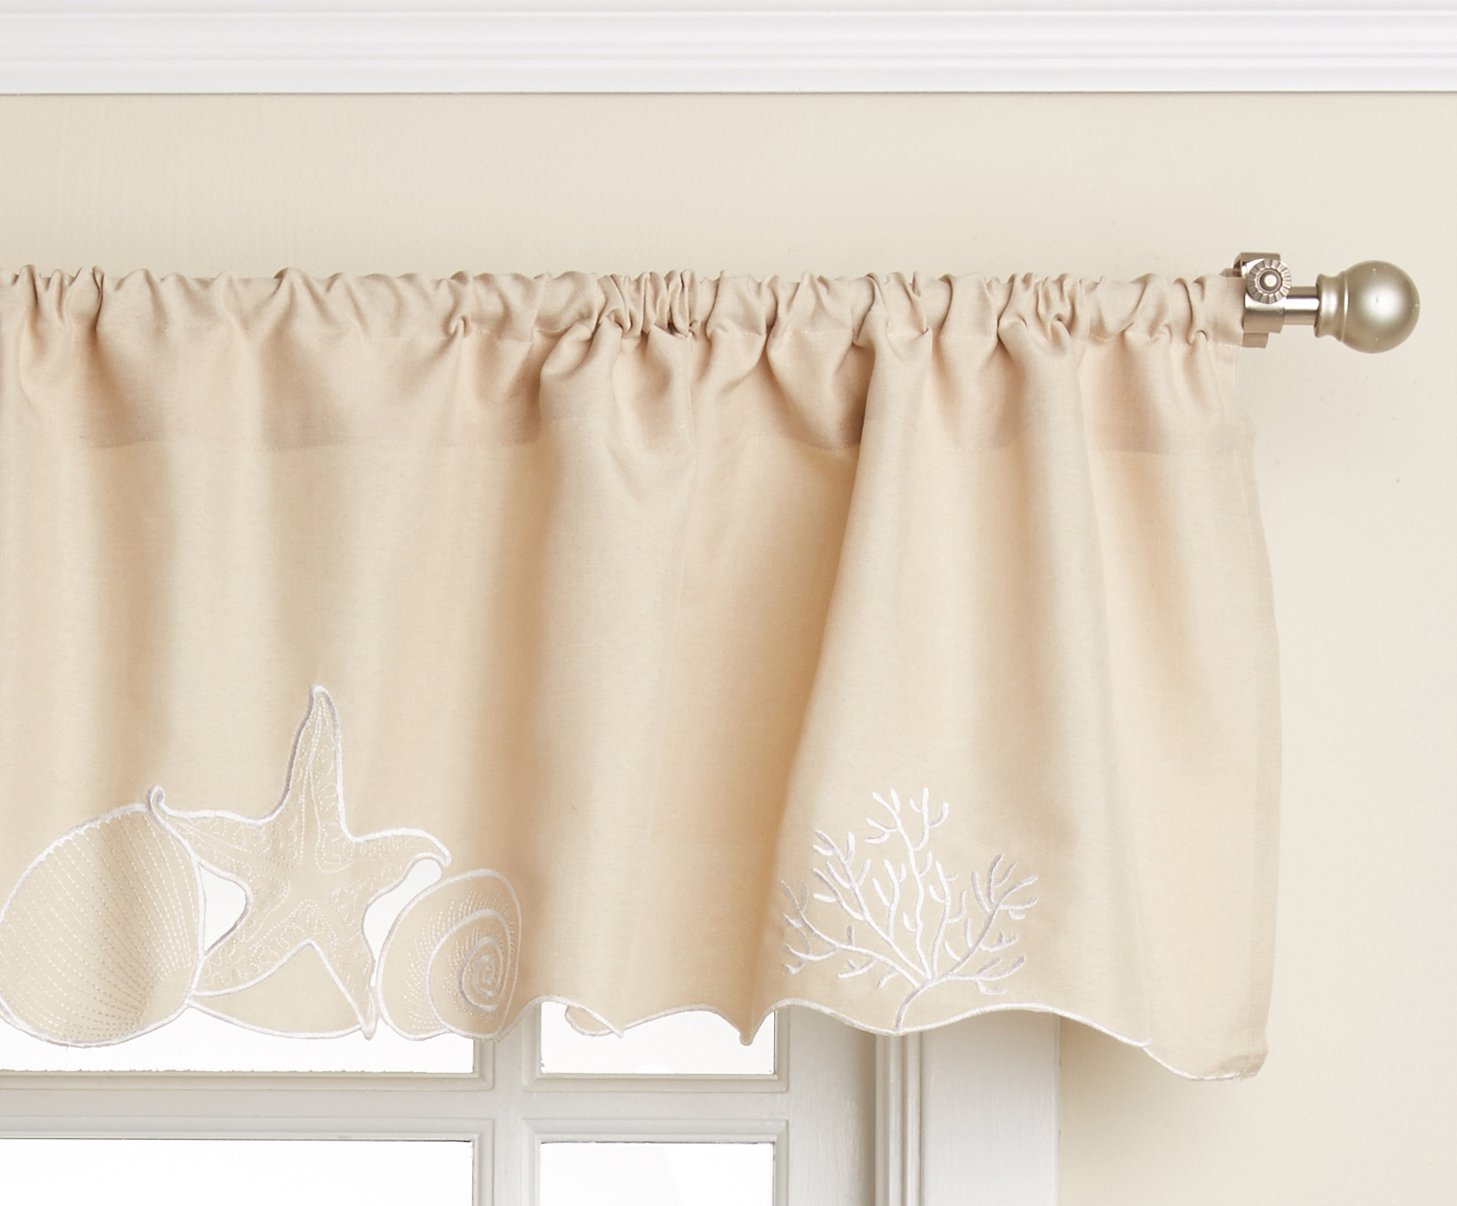 LORRAINE HOME FASHIONS Sanibel Valance, 56 x 12, Sand - Measures: Valance-inch Fabric Content: 100% polyester Care Instructions: Machine wash, cold water, gentle cycle. Do not bleach. Line dry. Warm iron if necessary - living-room-soft-furnishings, living-room, draperies-curtains-shades - 71kj2mWnkXL -